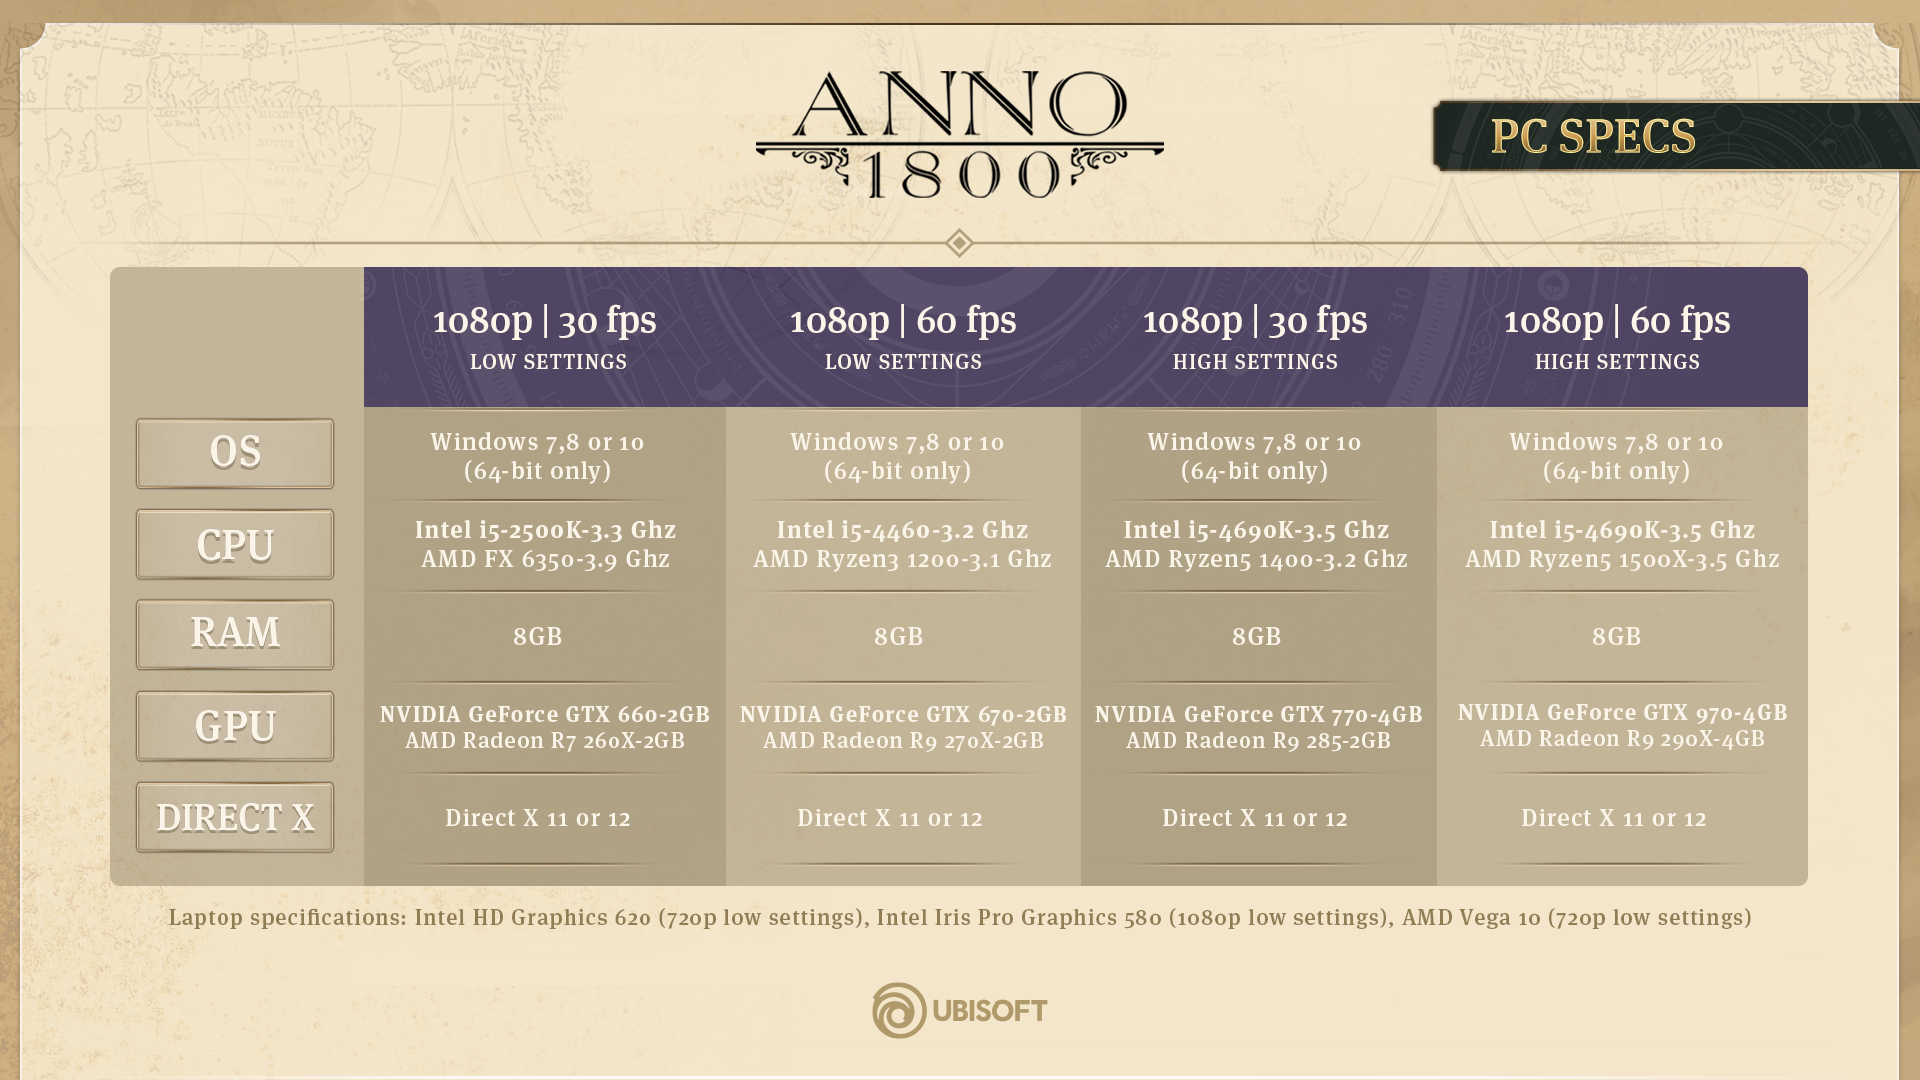 BBM3758_Anno1800_System_Requirements_v02-1.png